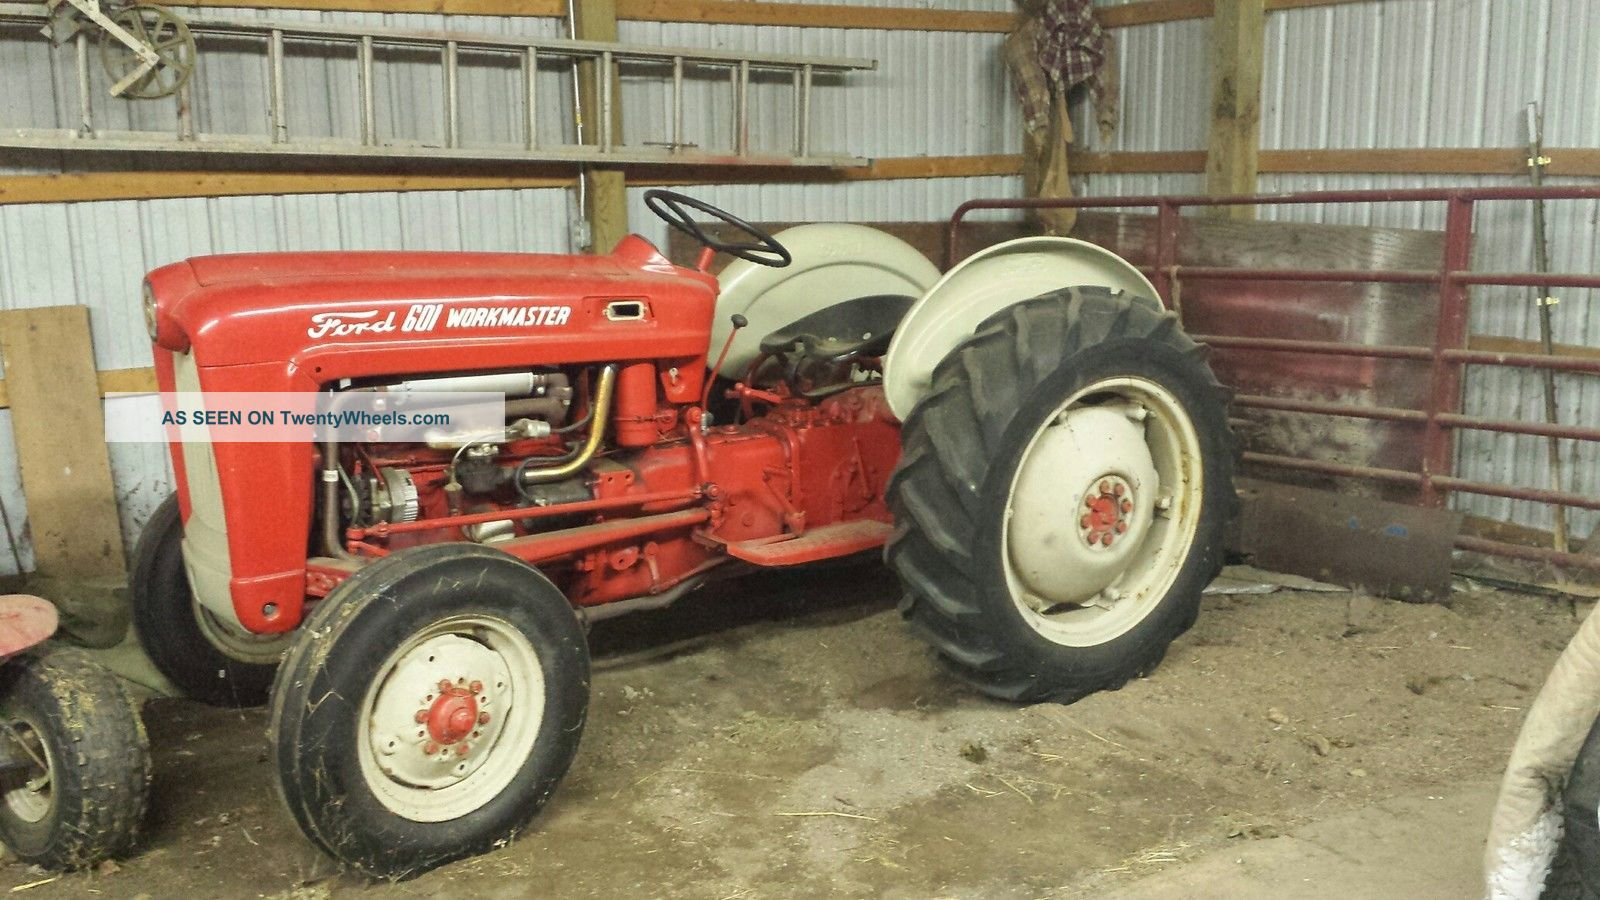 Ford 601 Workmaster Tractor : Ford workmaster tractor